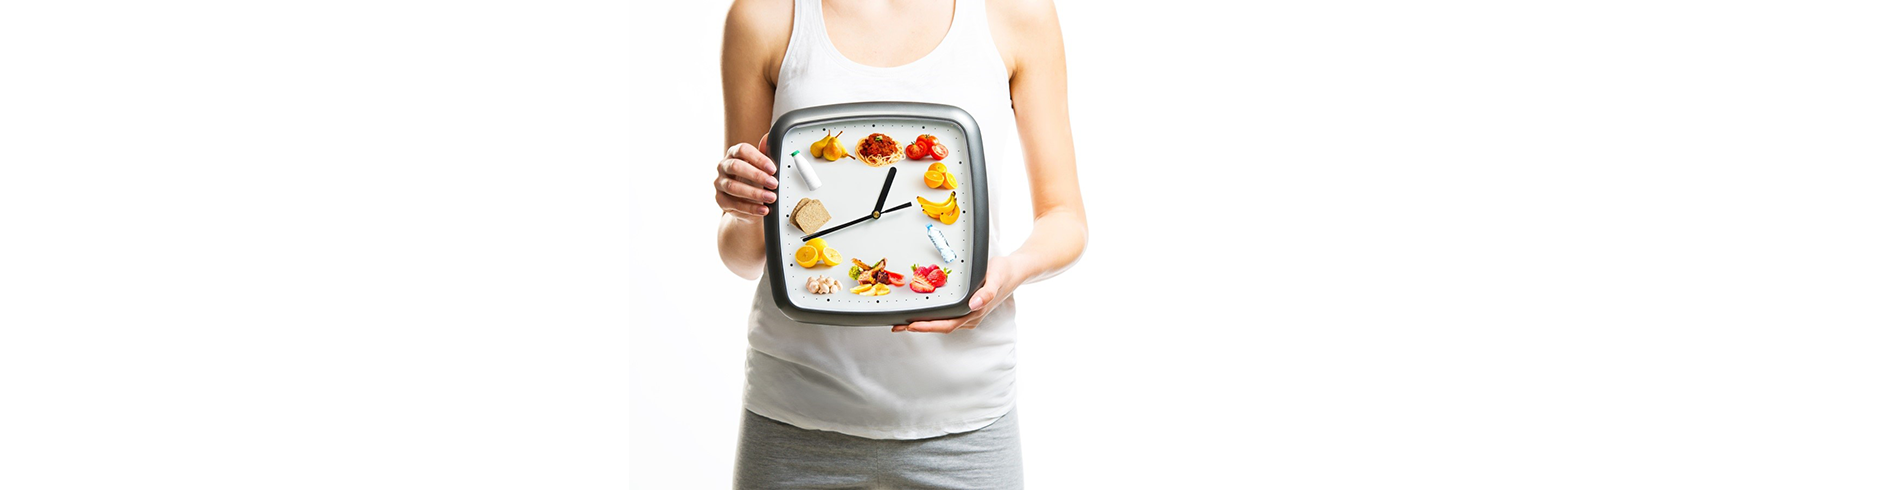 More Nutrition in Fifteen Minutes, Than Most People Get All Day